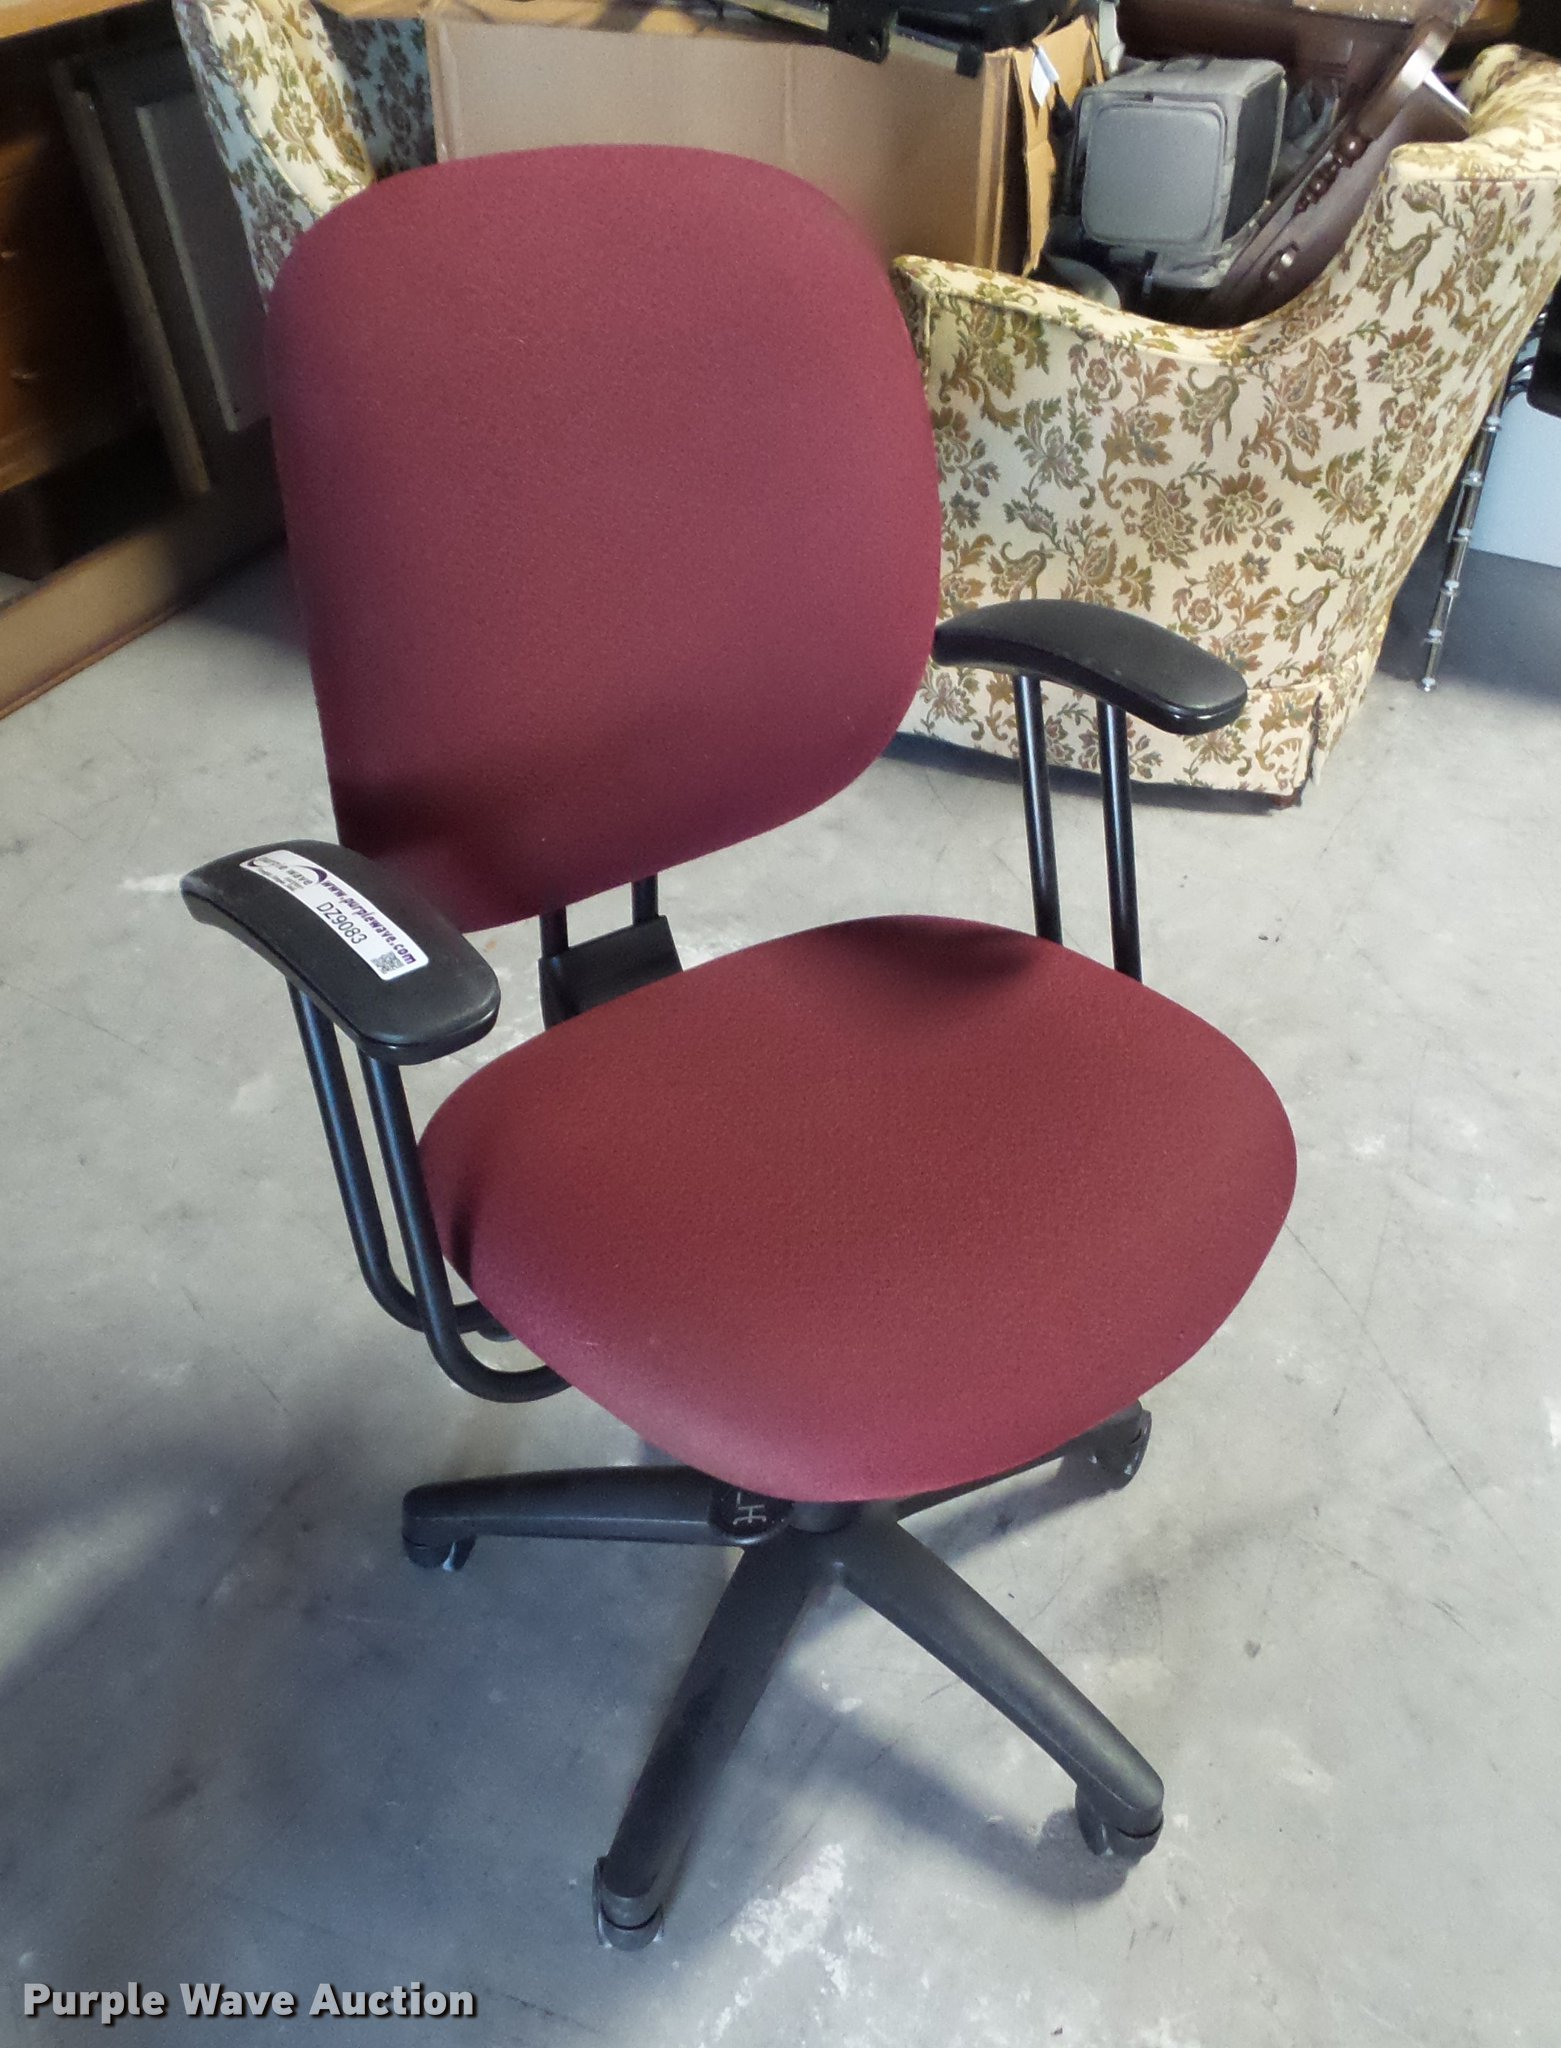 dz9083 image for item dz9083 16 hon office chairs